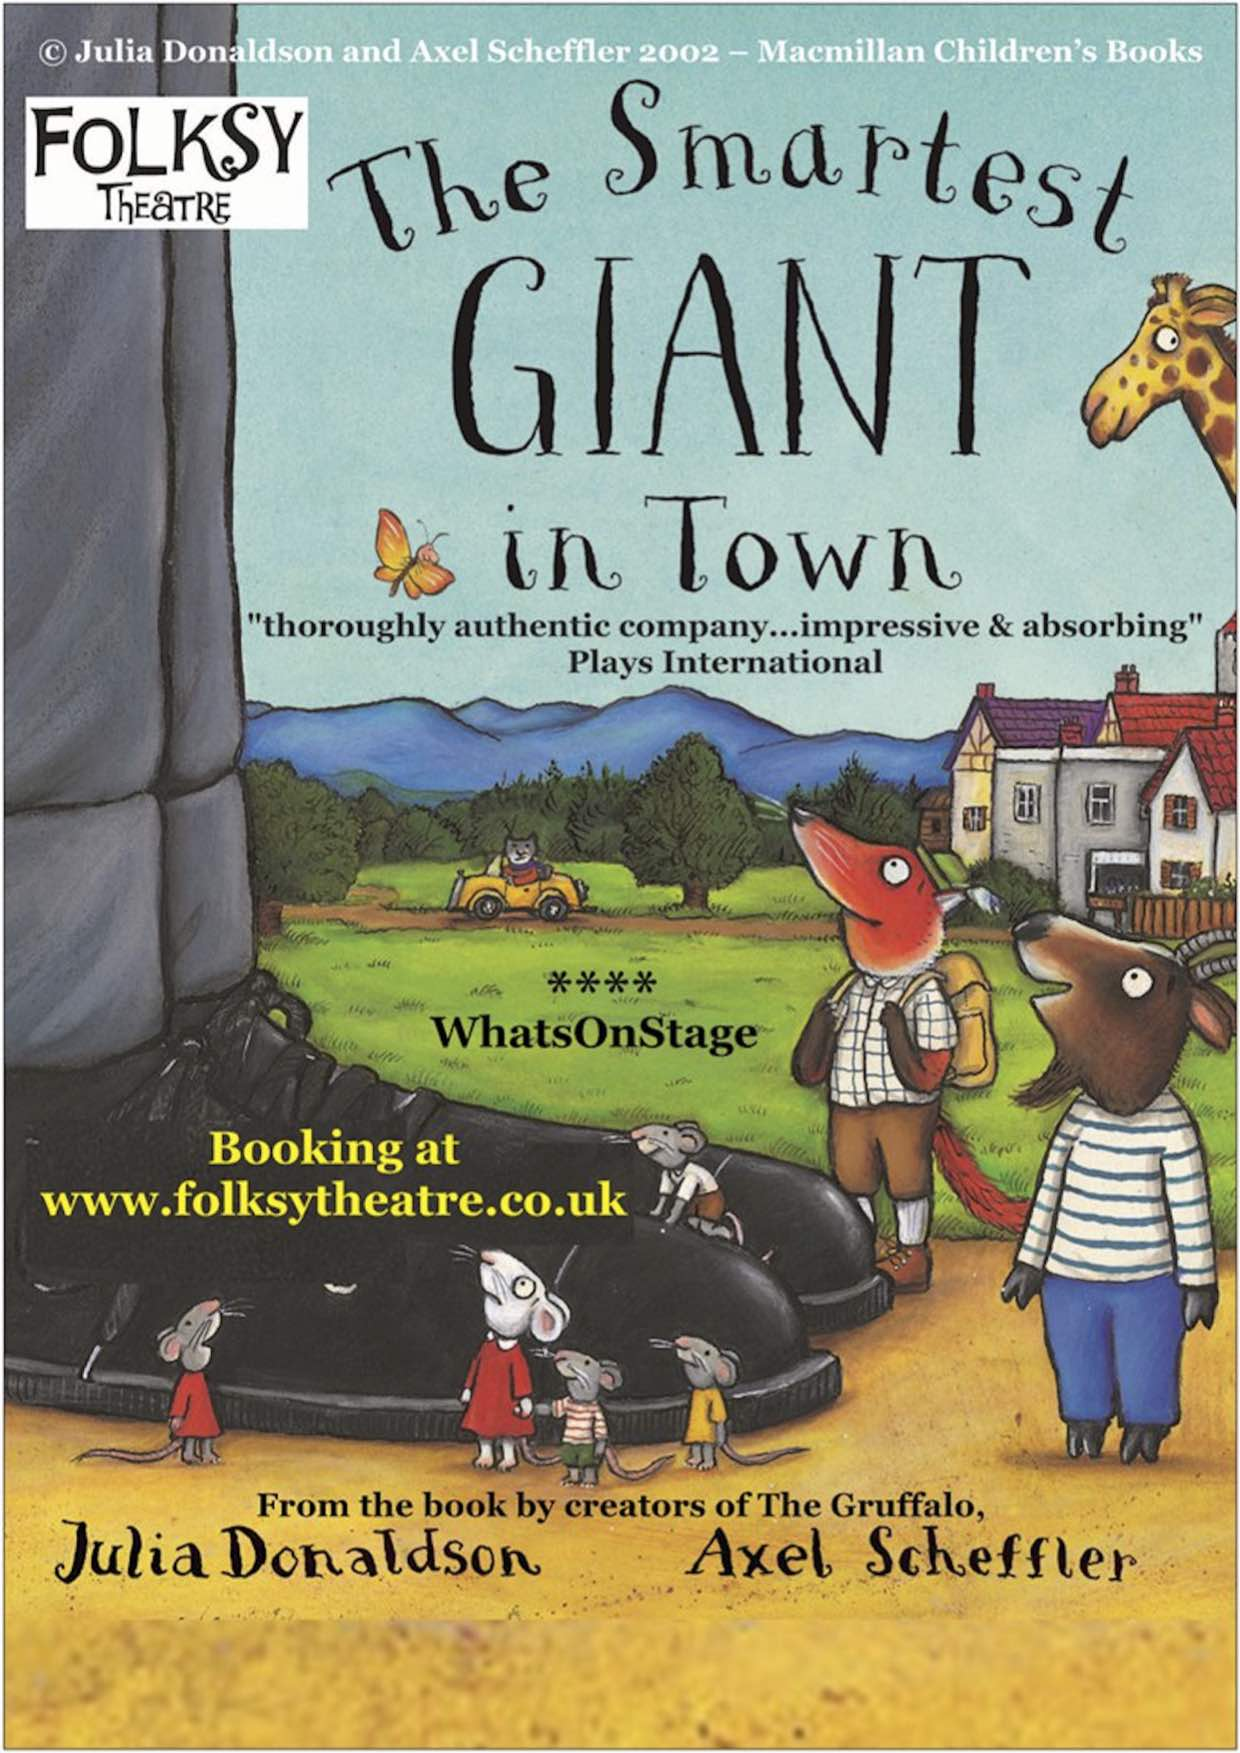 Folksy Theatre present 'The Smartest Giant in Town'